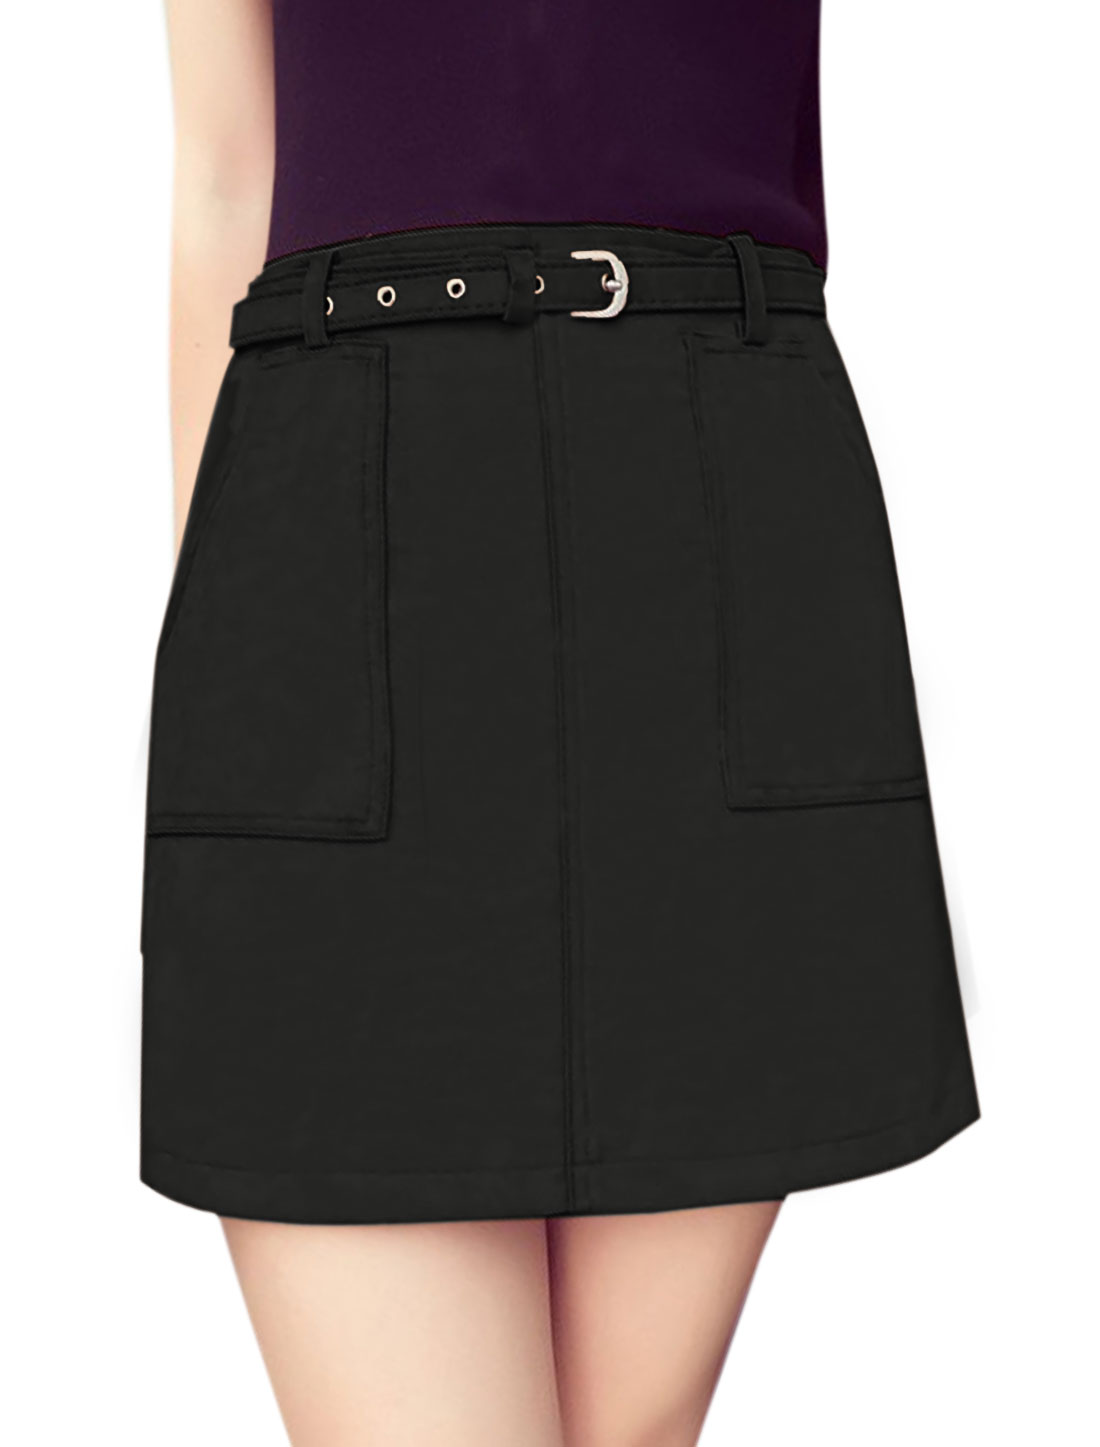 Women High Waist Two Front Pockets A Line Skirt w Belt Black L